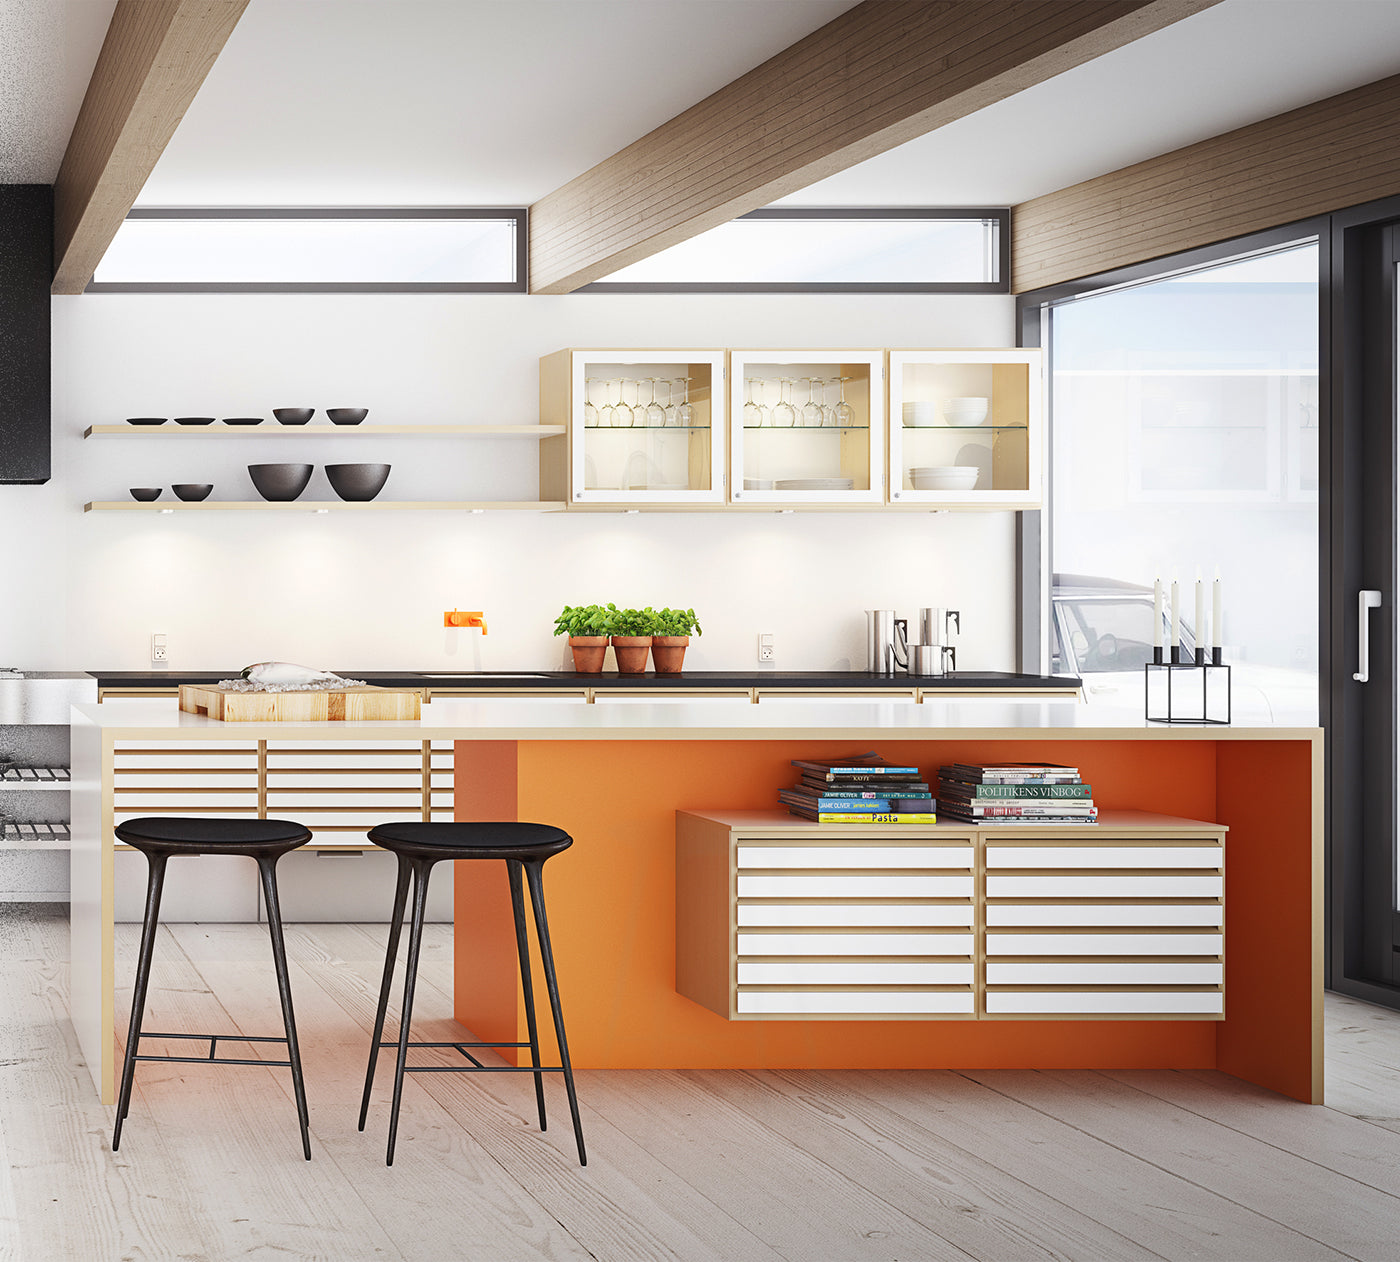 Why Selecting The Right Kitchen Materials Matter